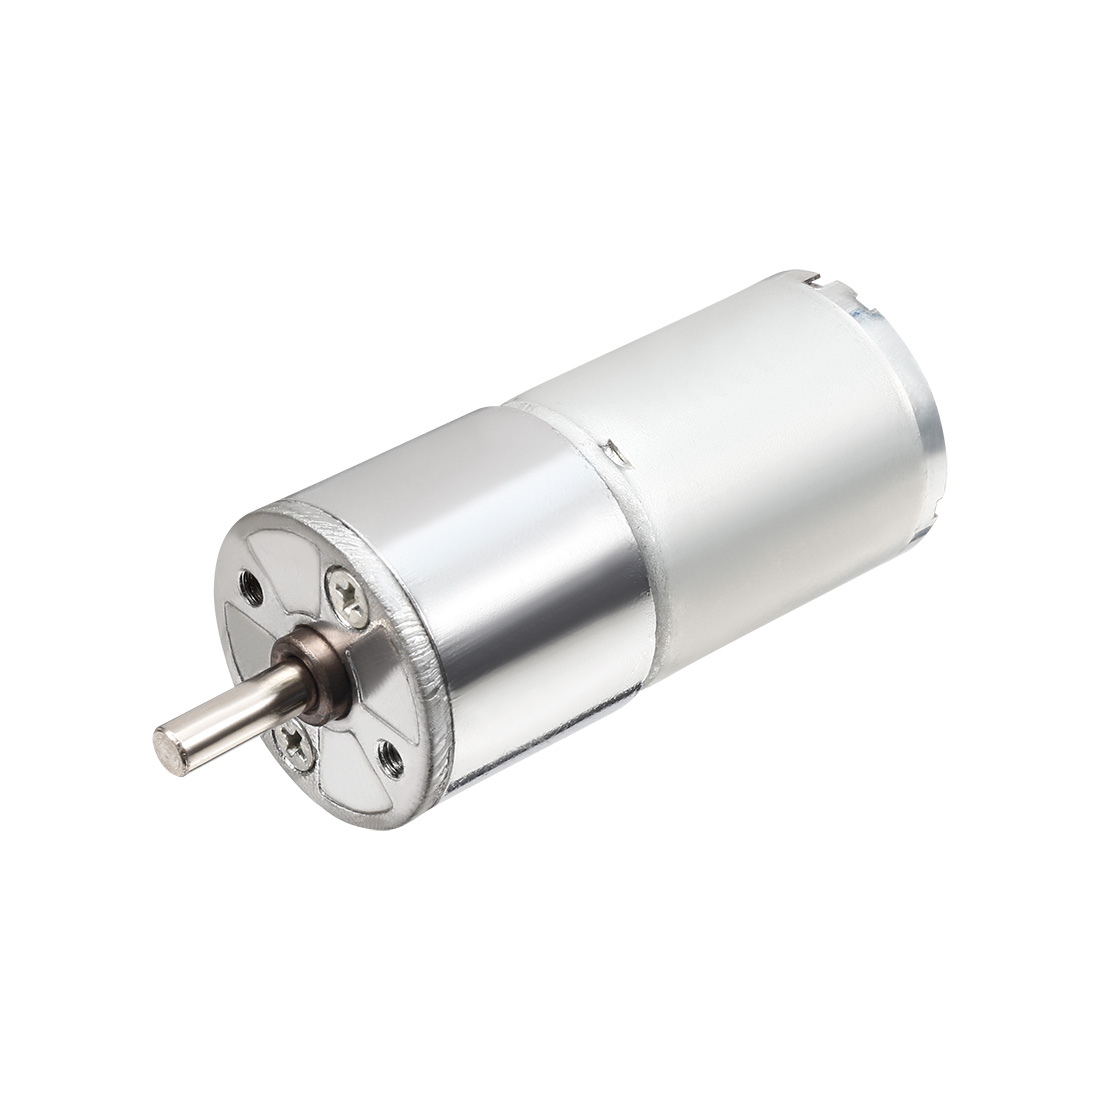 4mmx11mm-Shaft-25mm-Dia-Cylinder-Shaped-Gear-Motor-50-RPM-12V-DC